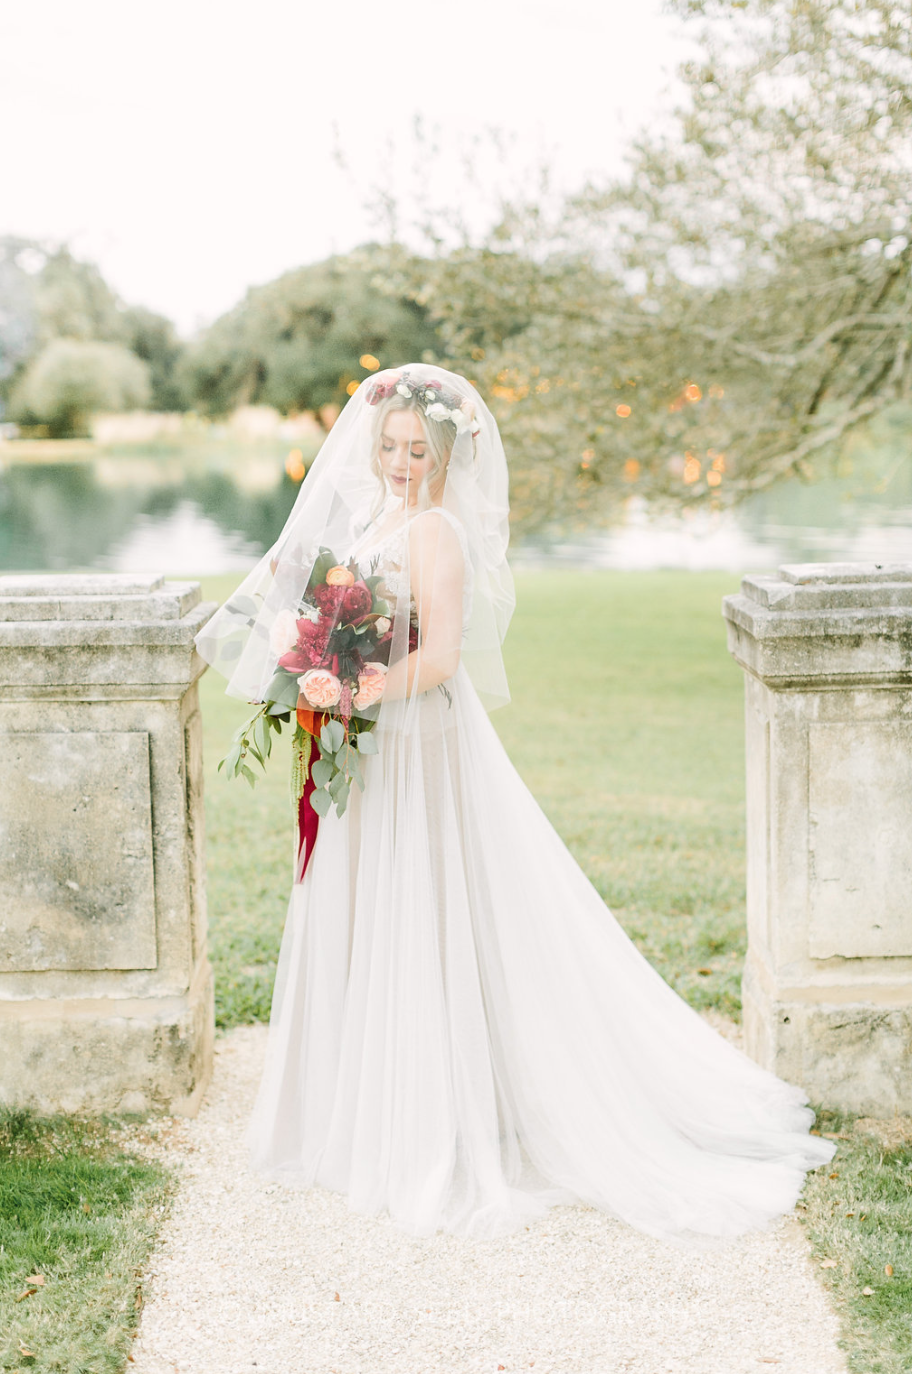 Blushing Bride at Houston Oaks Country Club- Bridal Bouquet and Floral Crown by Maxit Flower Design